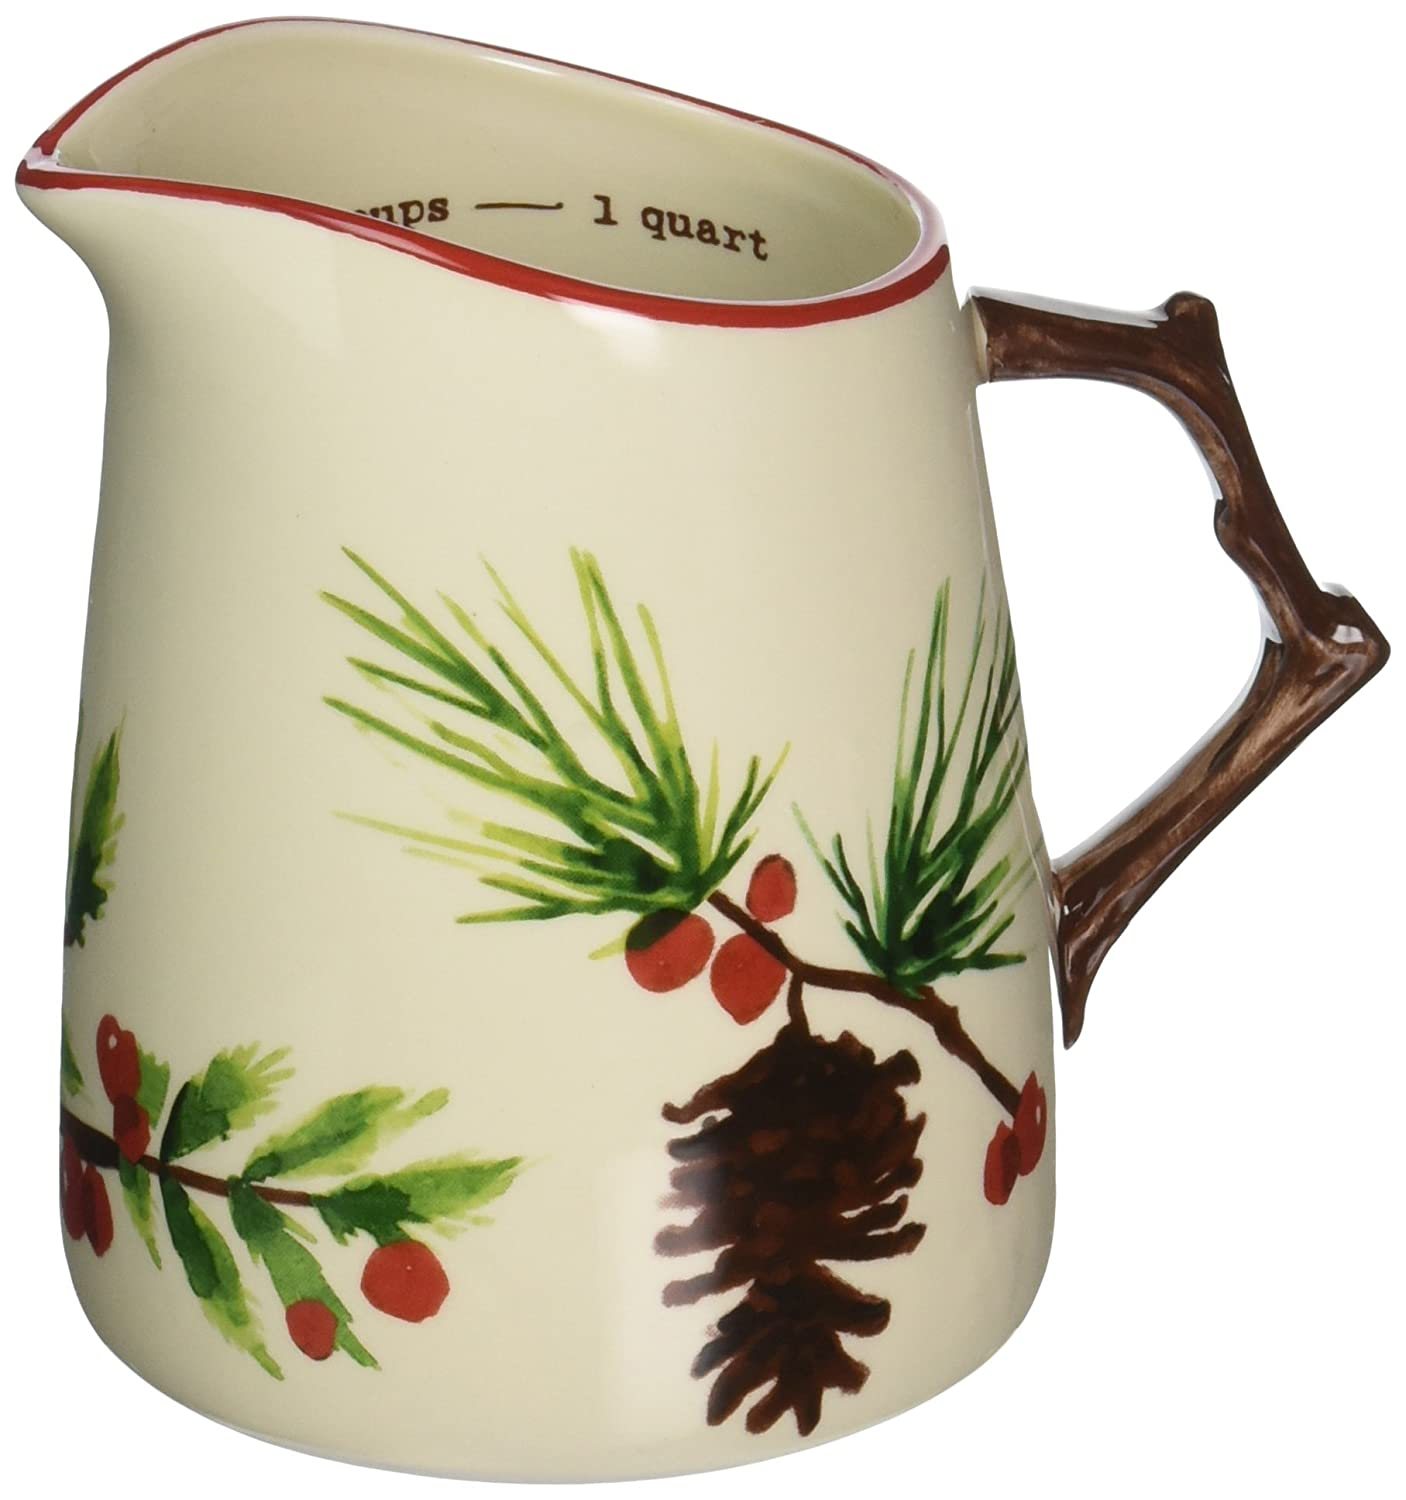 tag 204920 Greenery Measuring Pitcher, 6.03 x 4.88, Multi